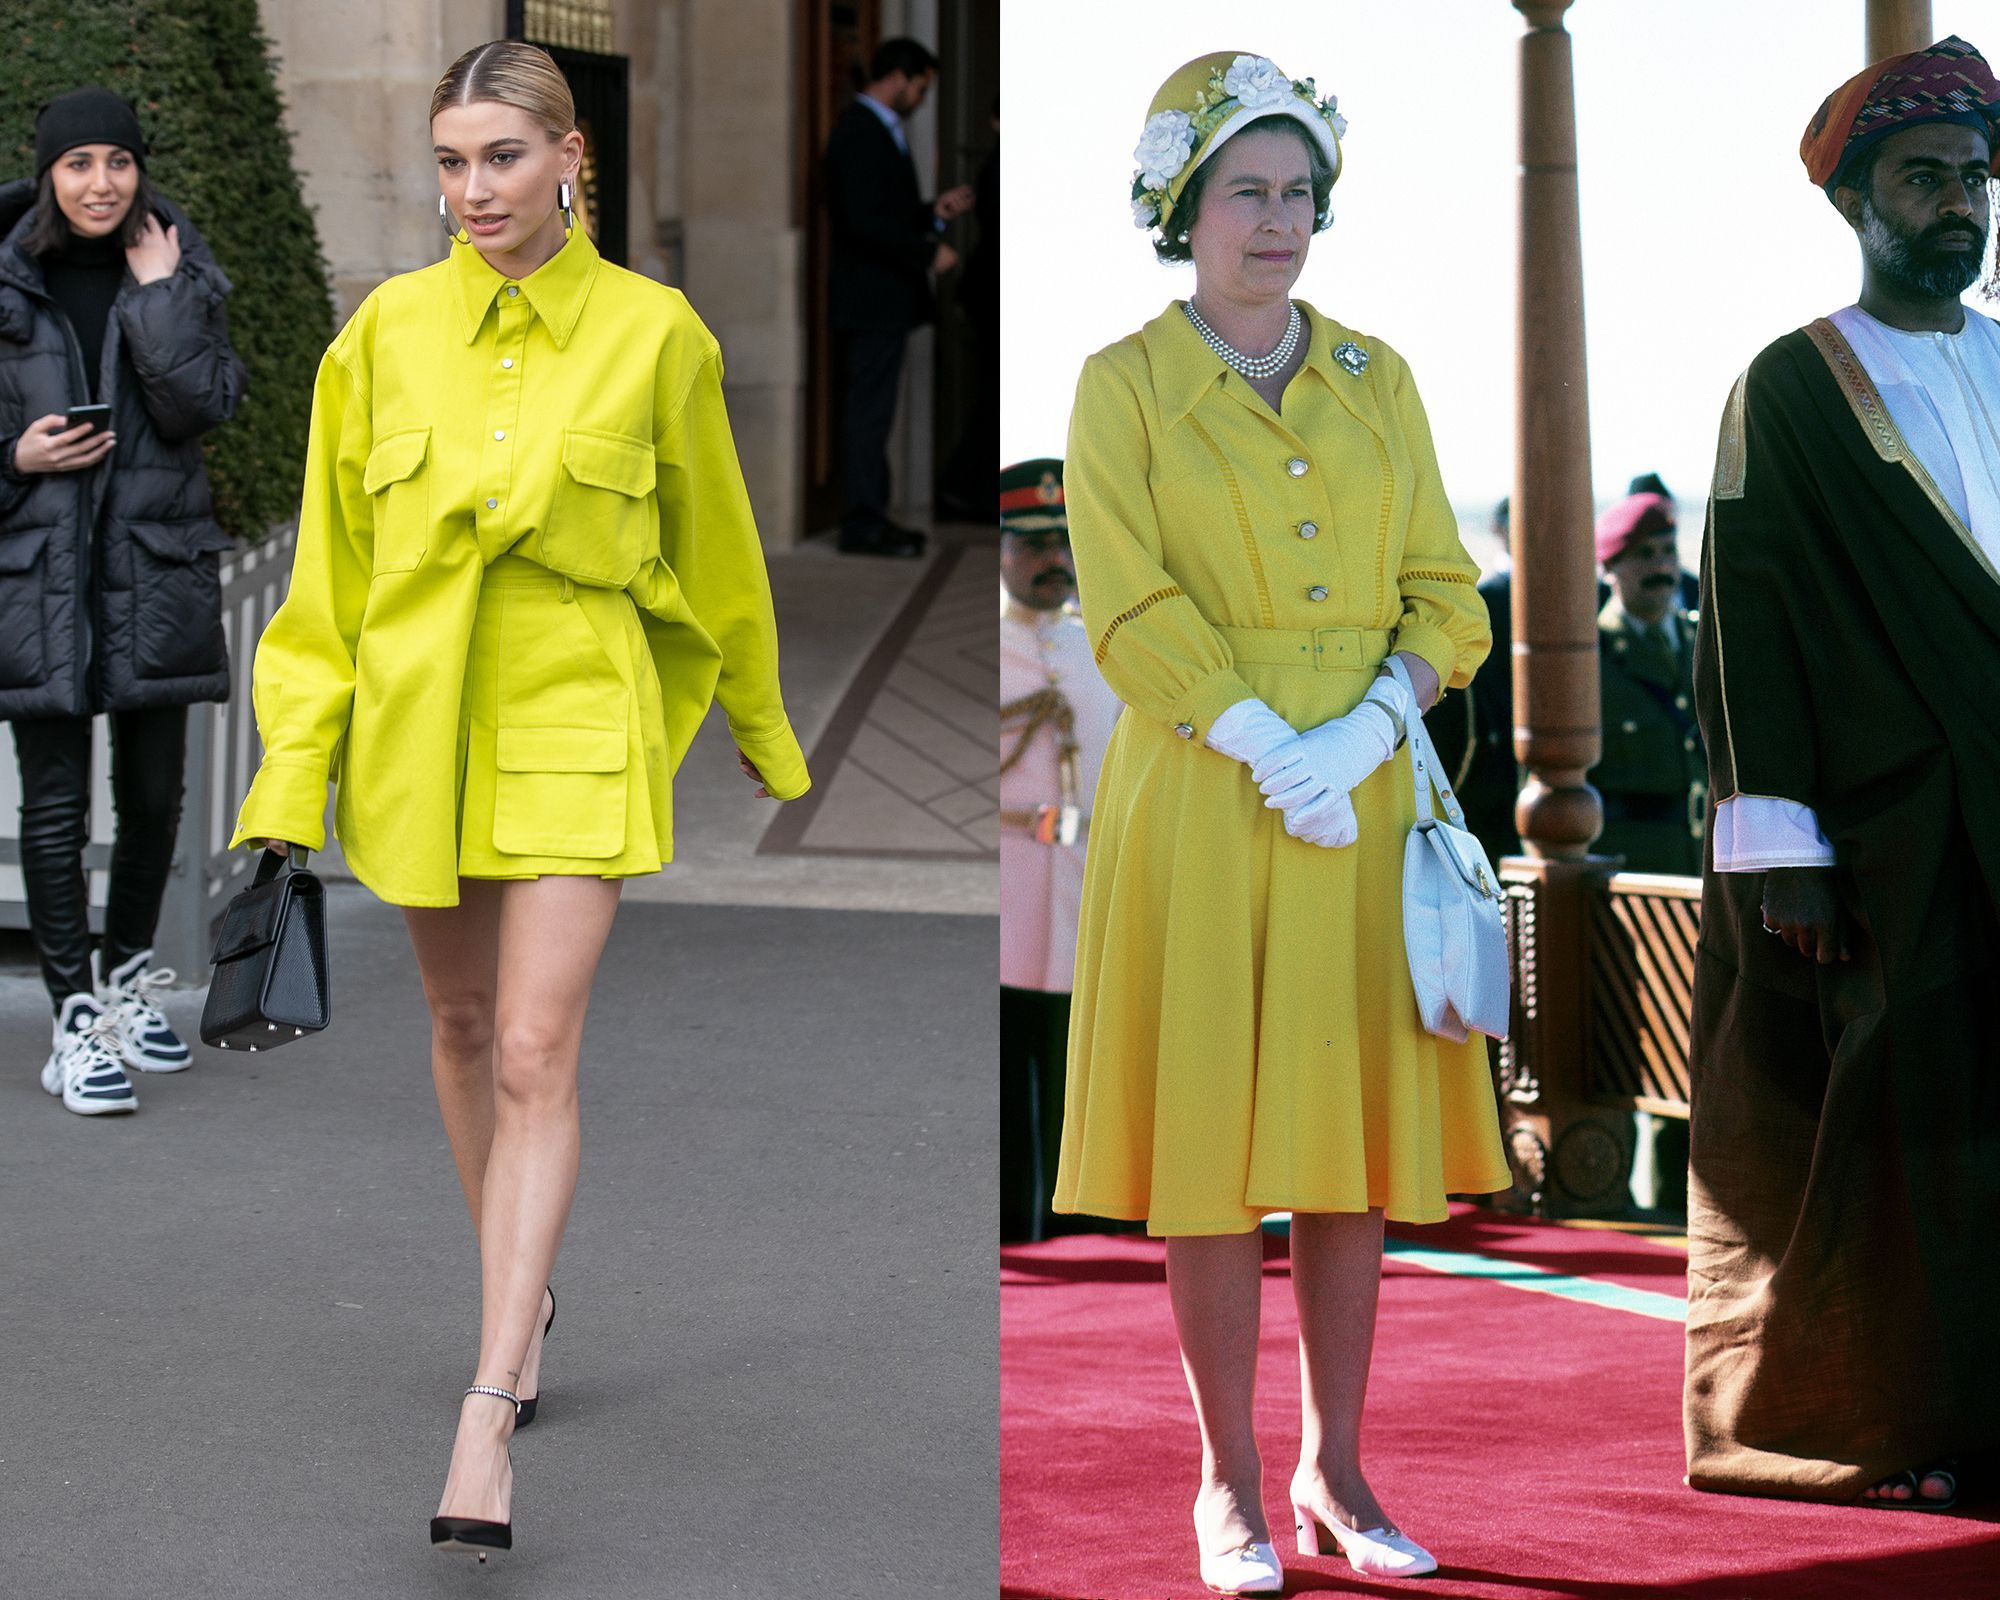 Hailey Bieber vs. the Queen